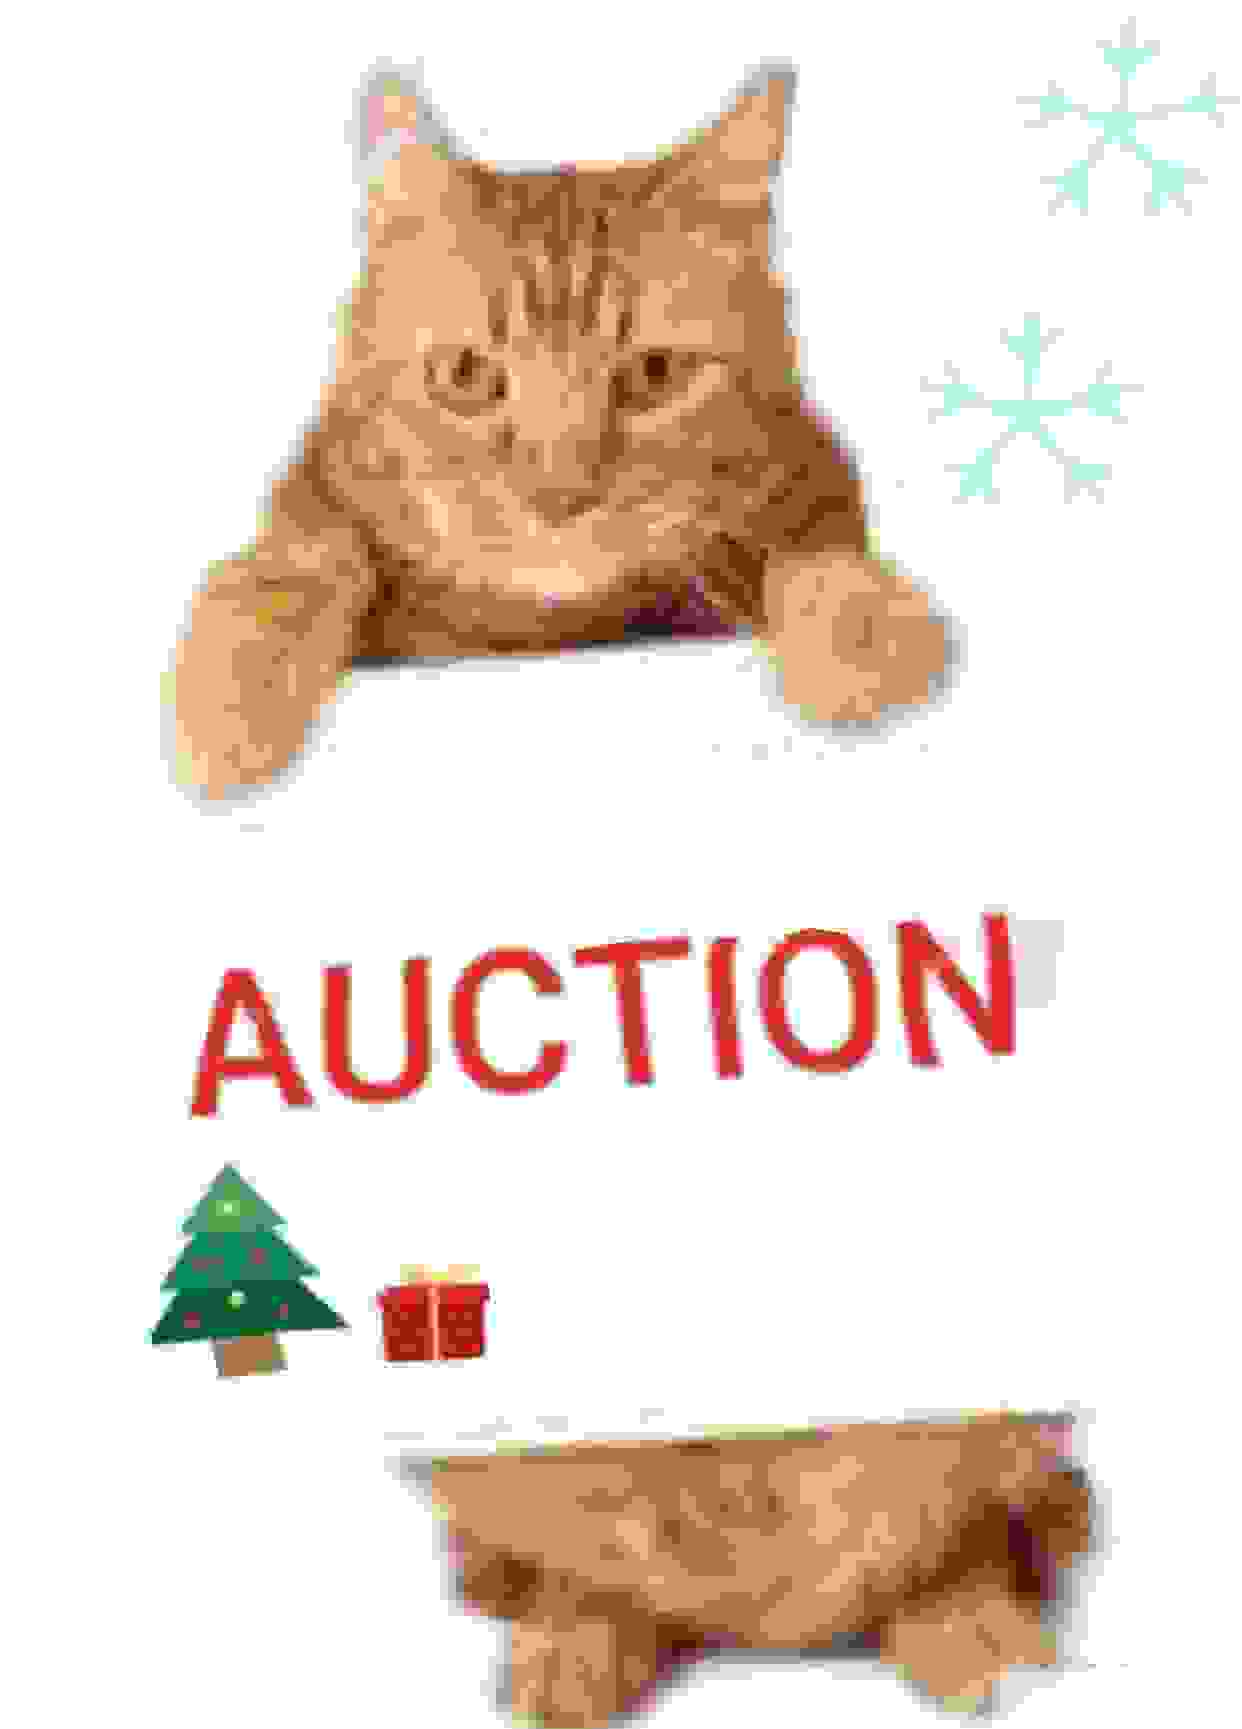 AUCTION NOVEMBER 27-December 6